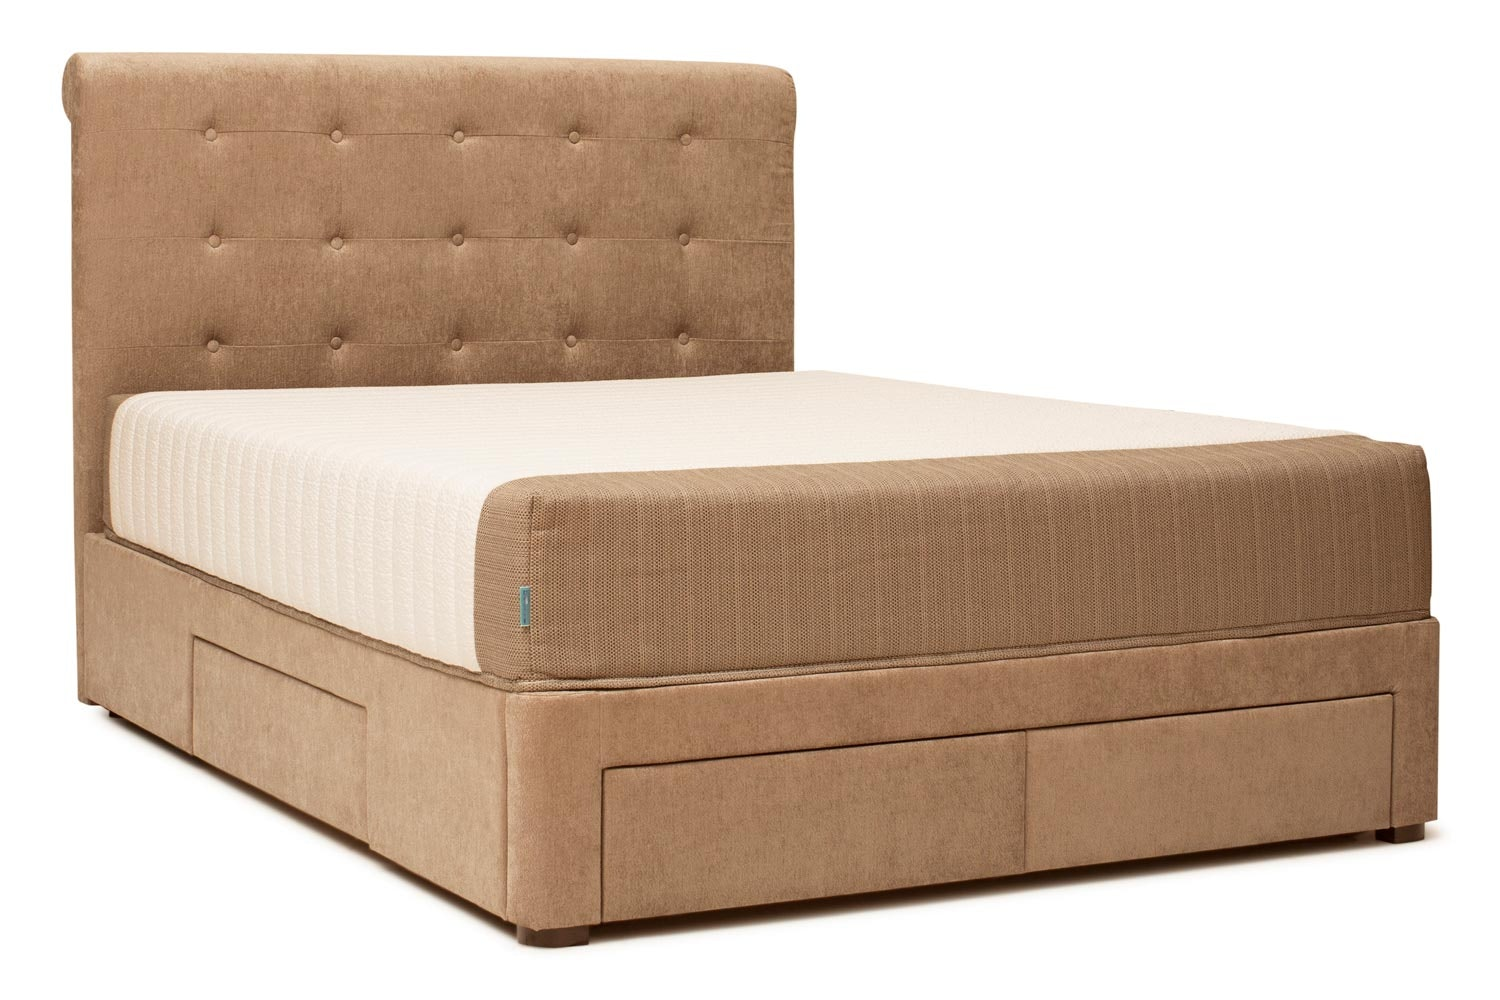 Duval Bed   Scroll Top with Storage   Mink   5ft